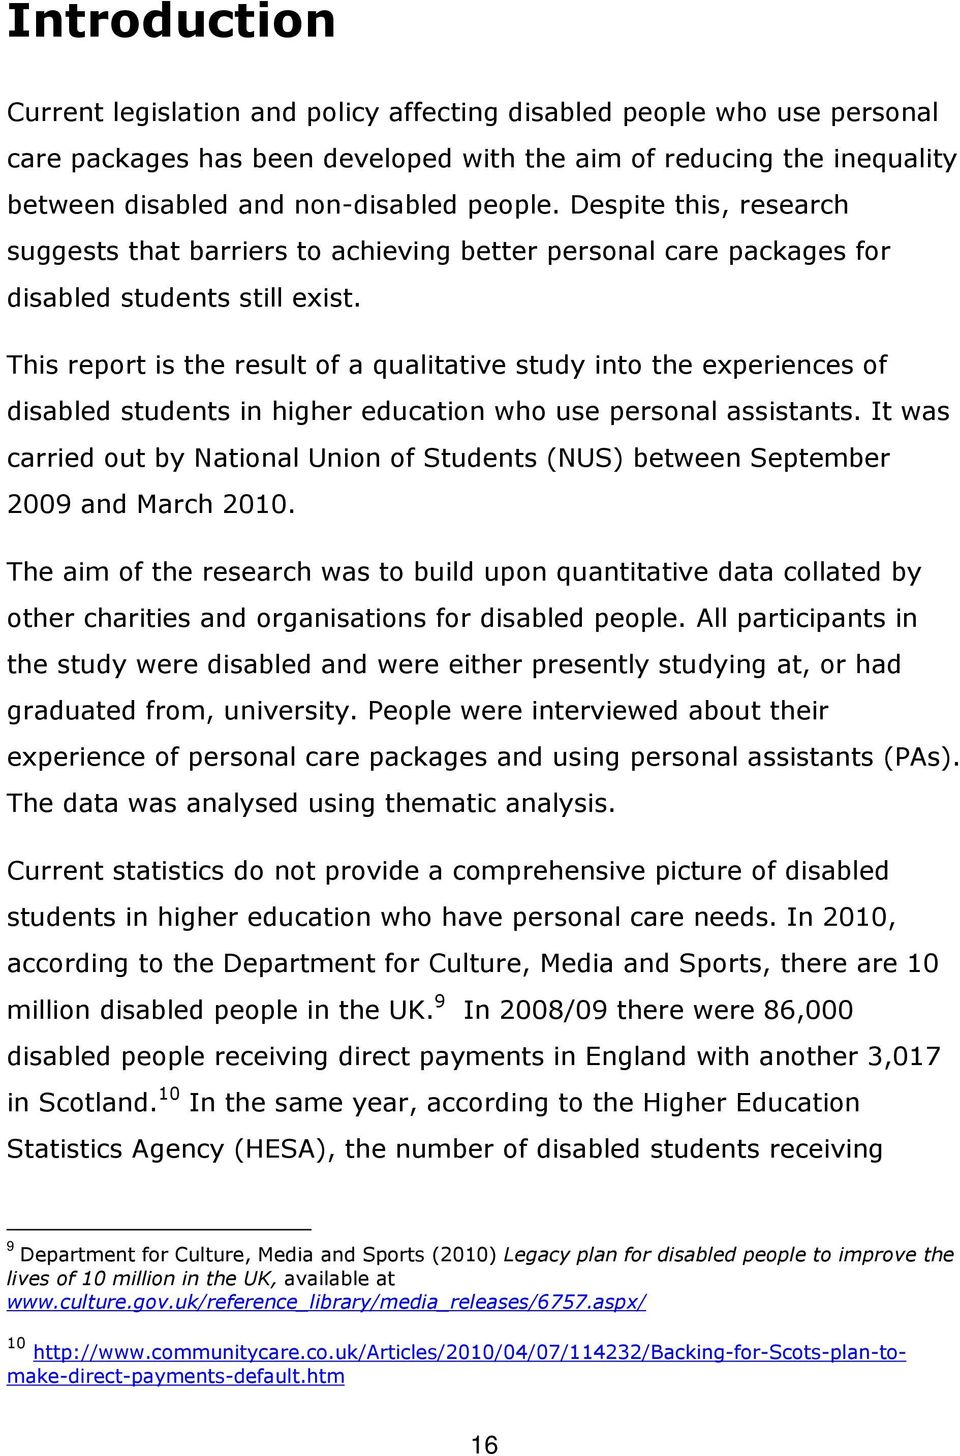 This report is the result of a qualitative study into the experiences of disabled students in higher education who use personal assistants.